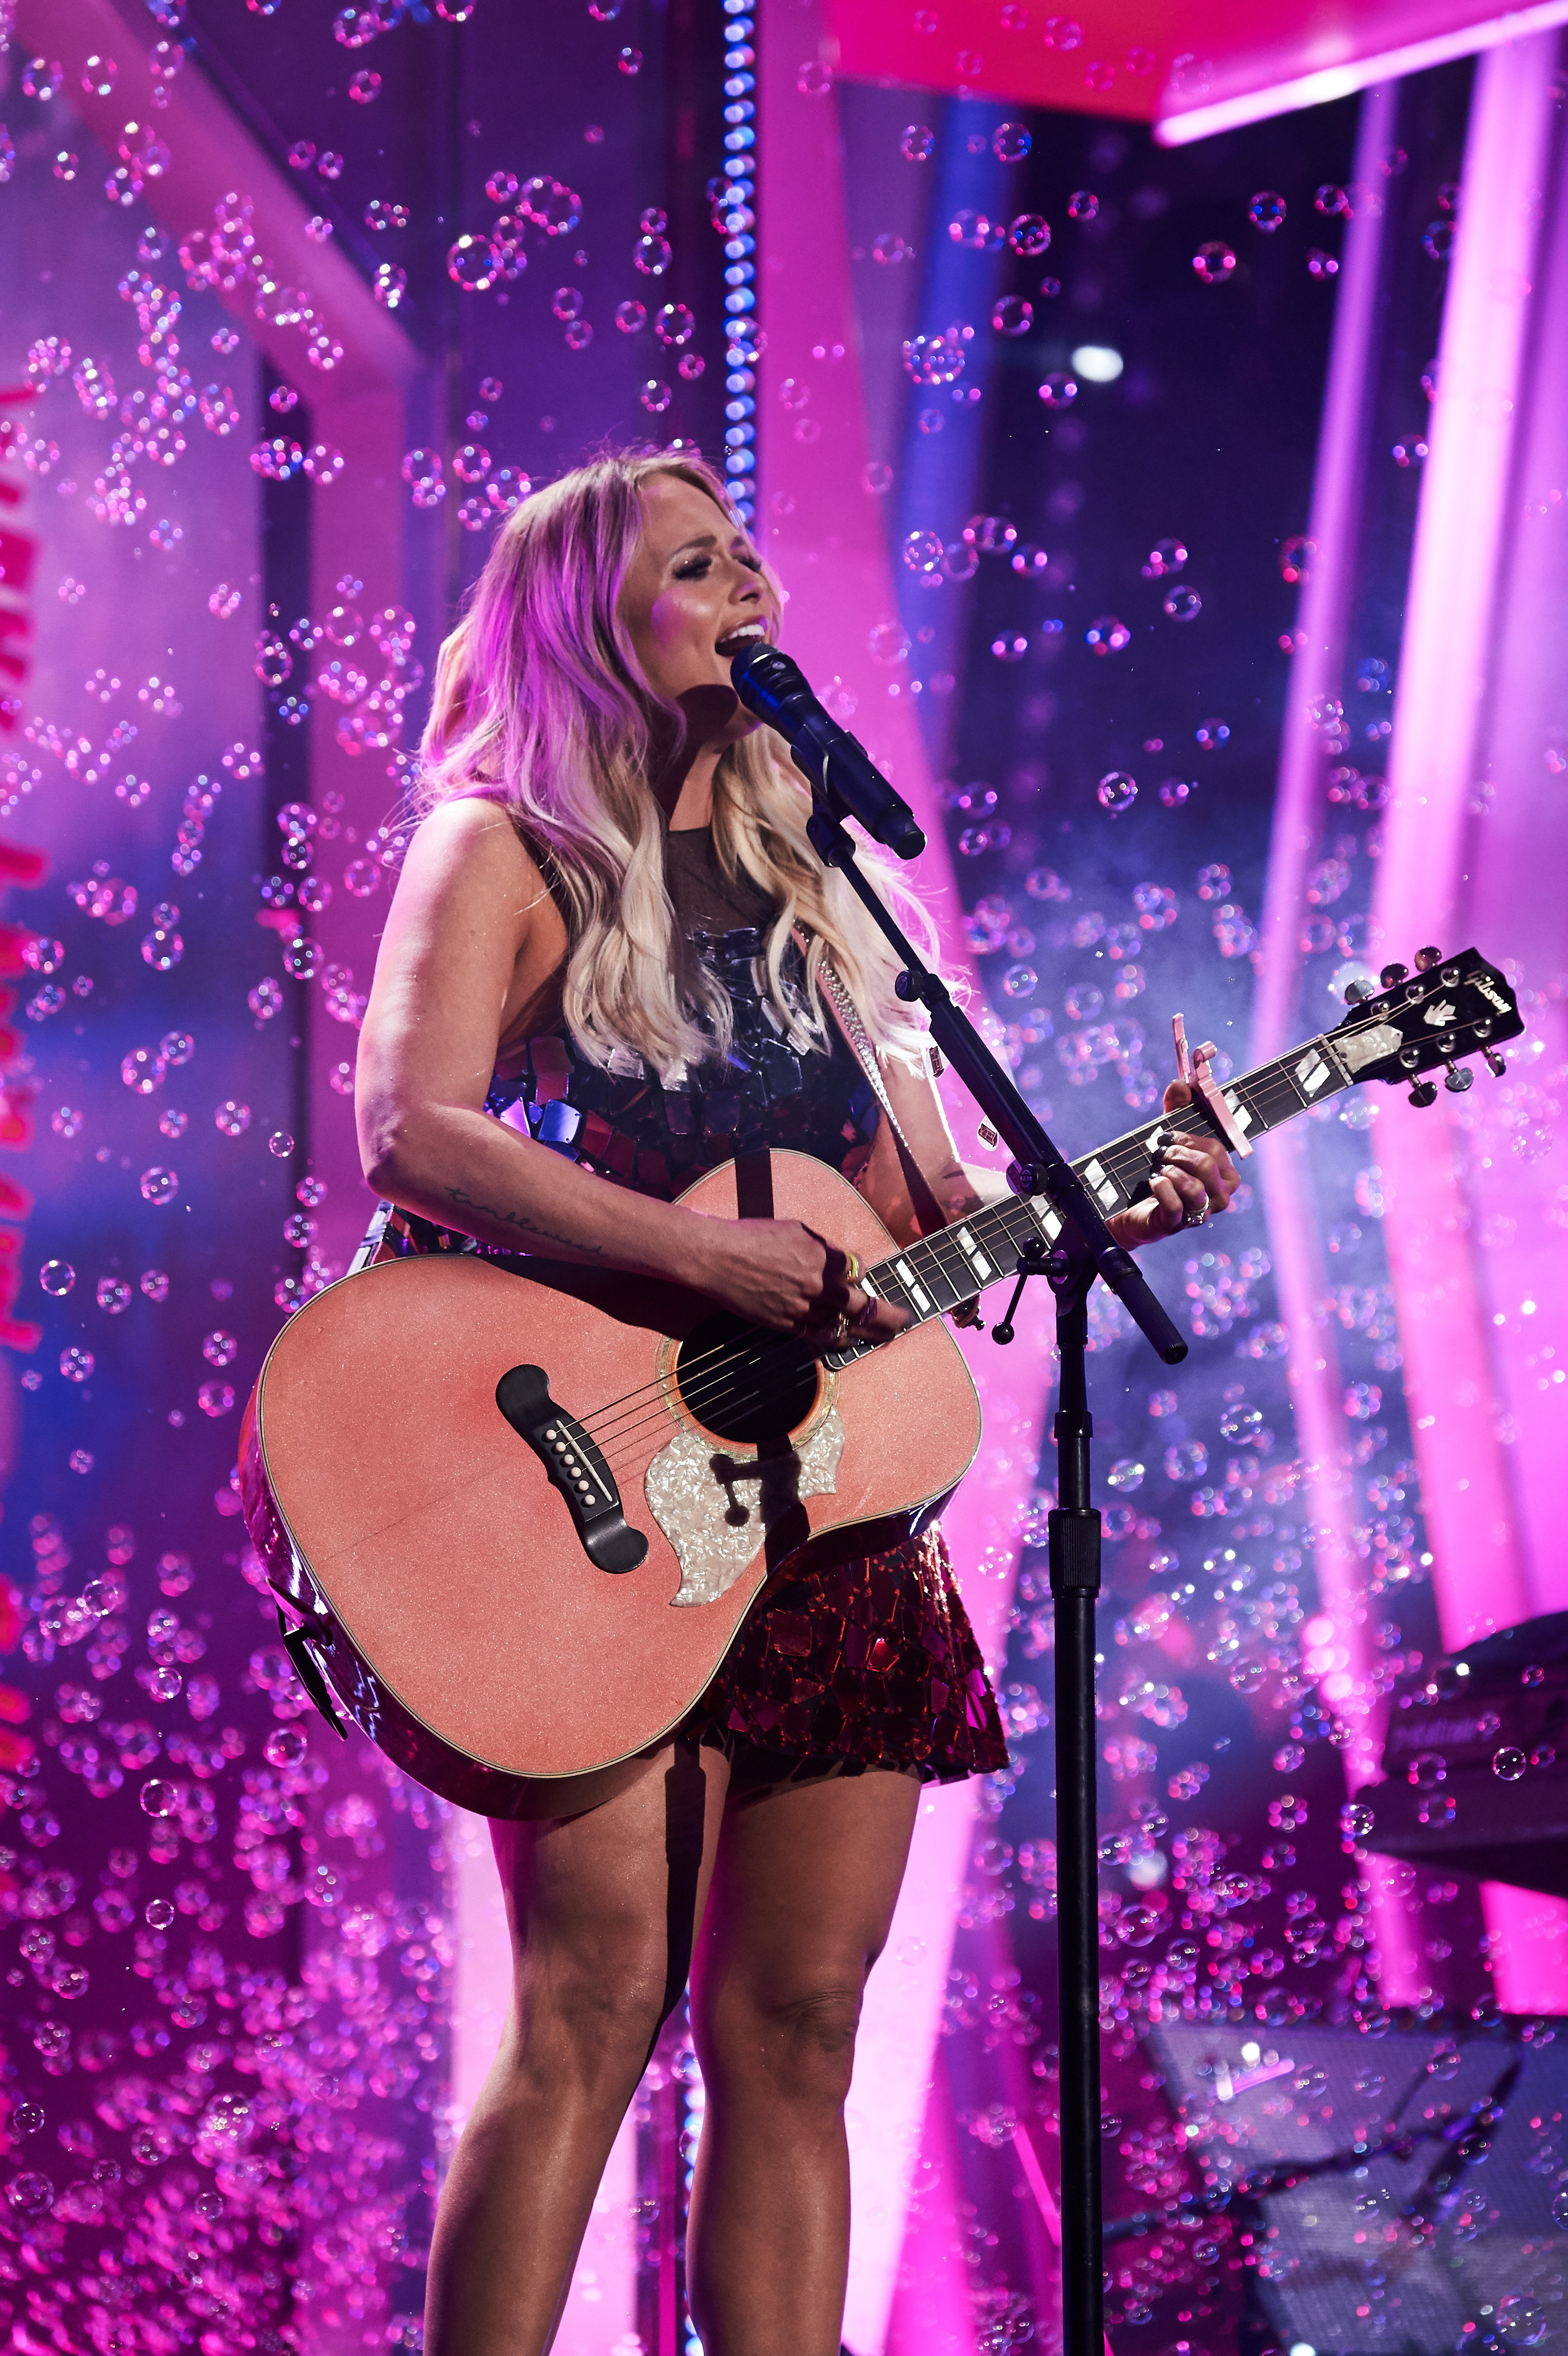 Miranda Lambert performs at the Country Music Awards in Nashville, Tennessee on November 13, 2019 | Photo: Getty Images